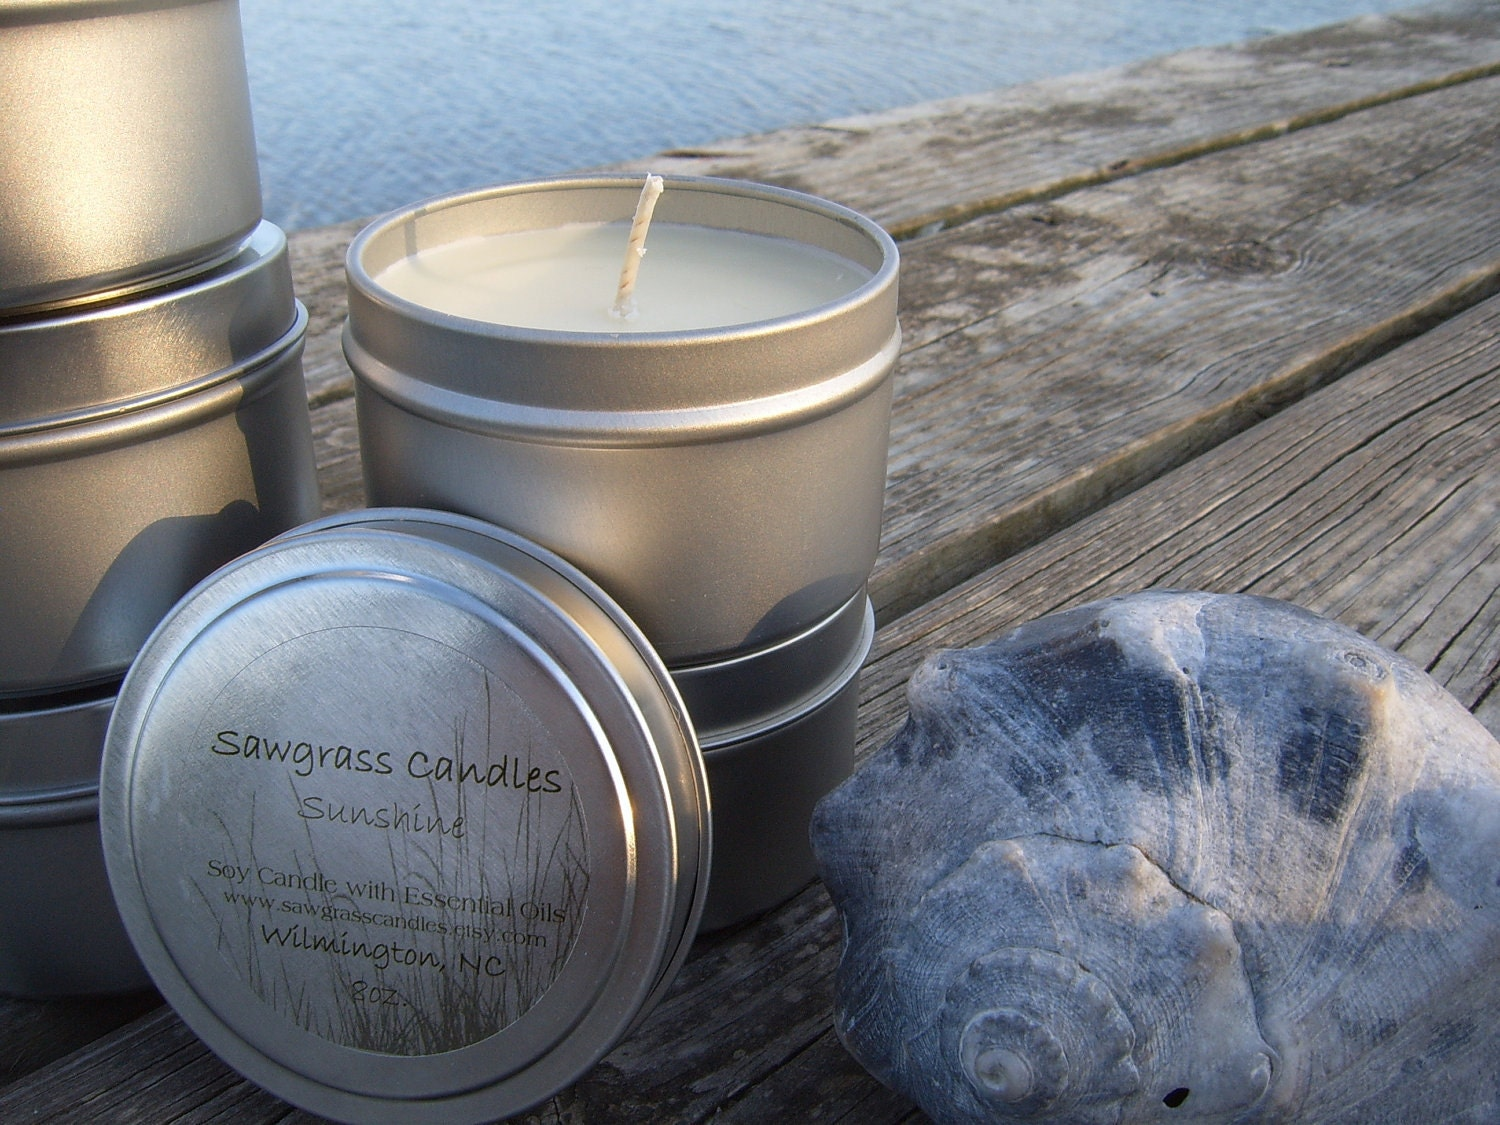 Sunshine - 6oz Soy Wax Candle in Travel Tin scented only with Essential Oils - sawgrasscandles